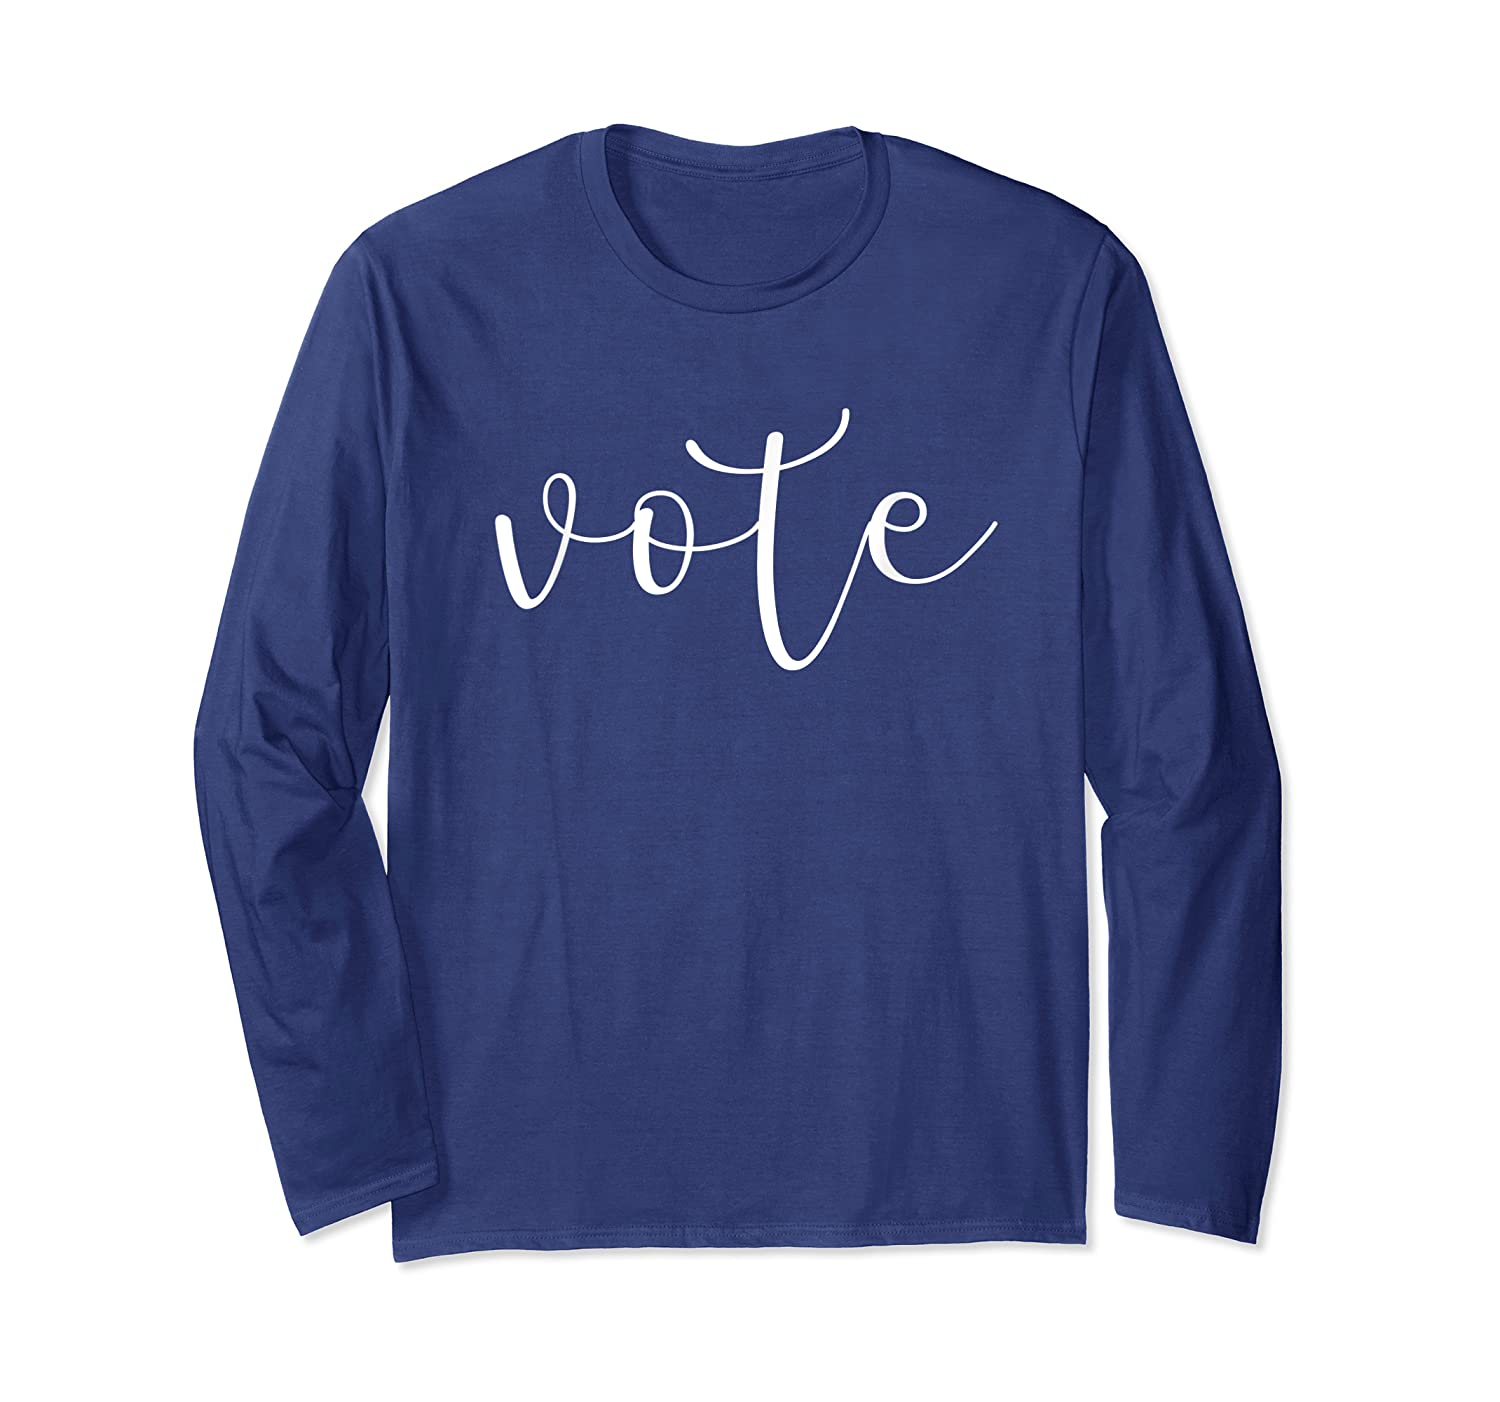 Vote Shirt Election Day 2020 Long Sleeve T-shirt